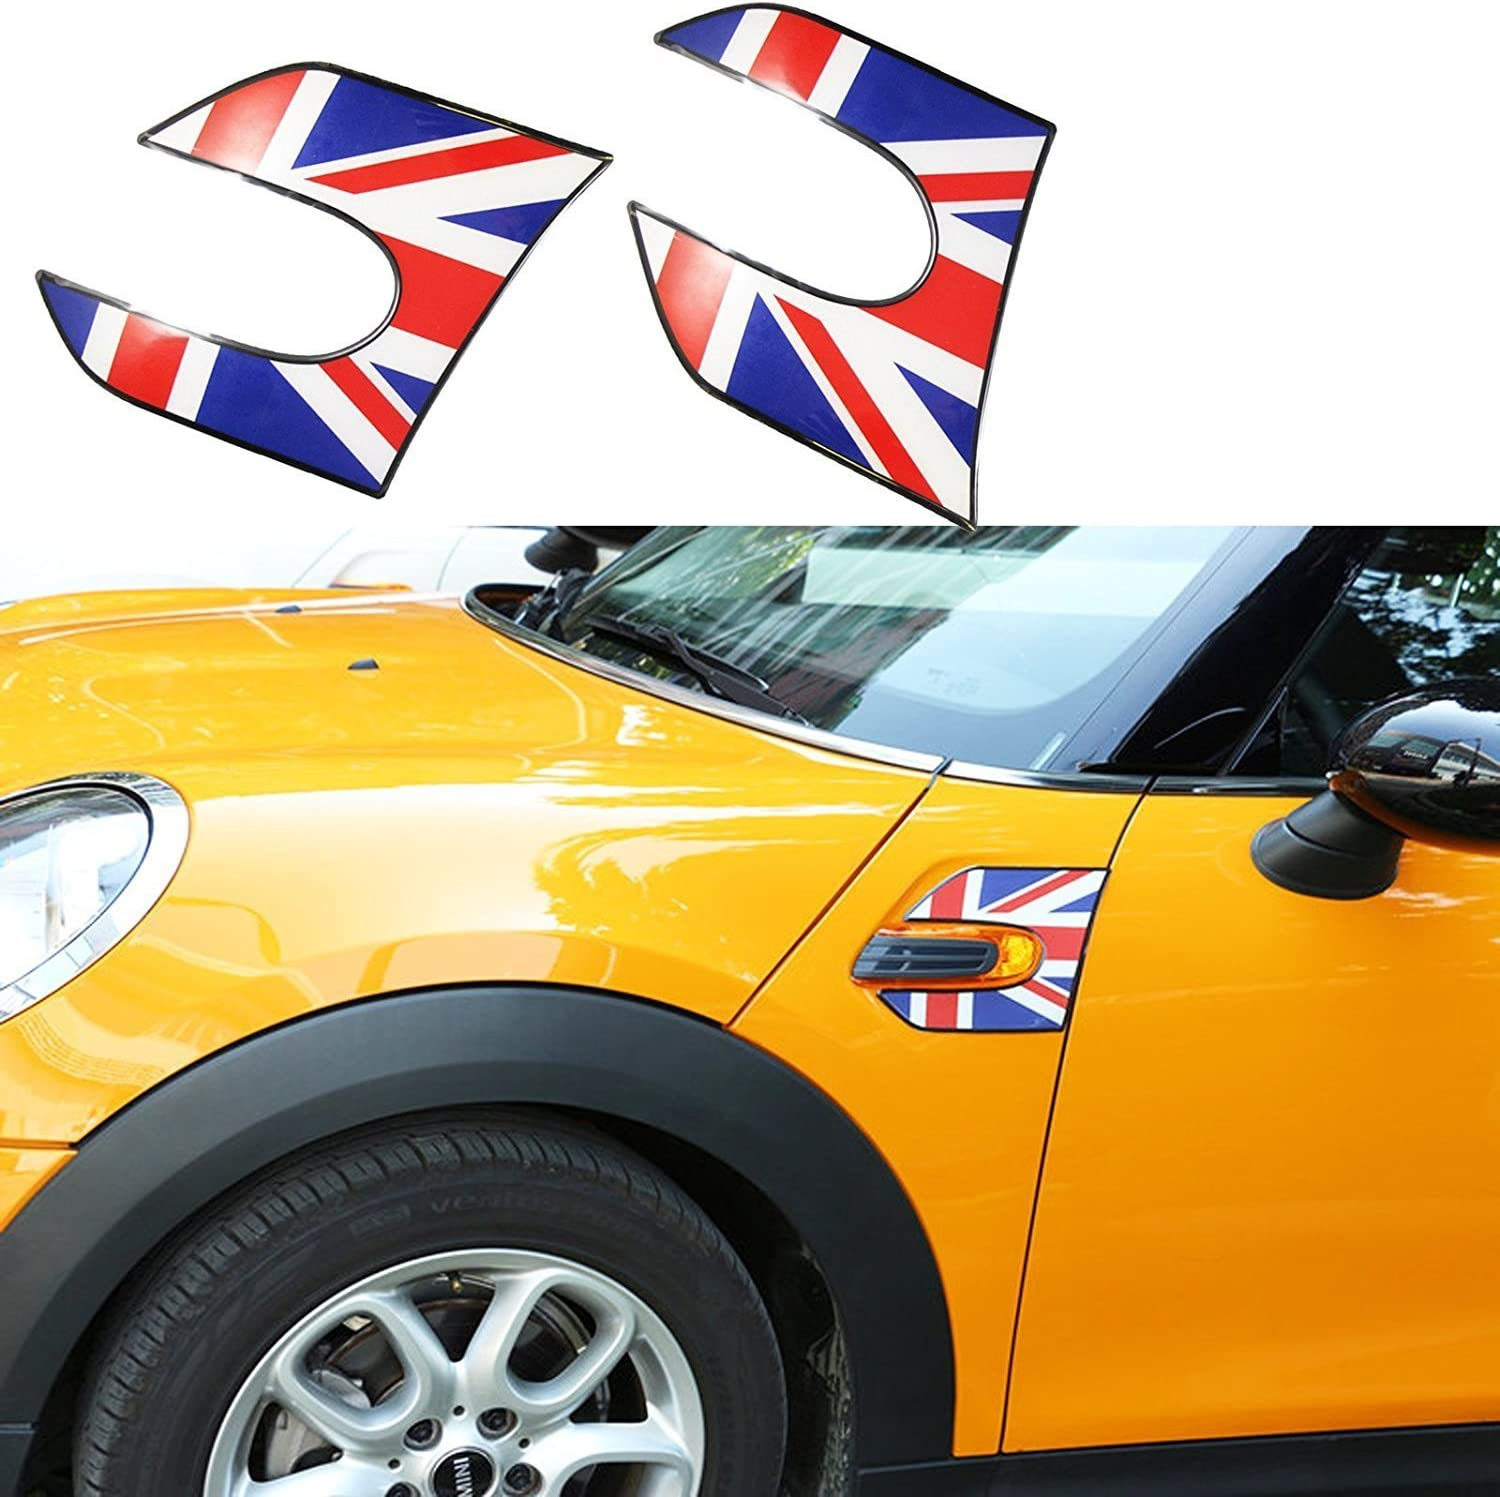 Fender Trim Xotic Tech Replacement for Mini Cooper S F56 2014 2x Red Blue UK Union Jack Fender Side Scuttle Sticker Decal